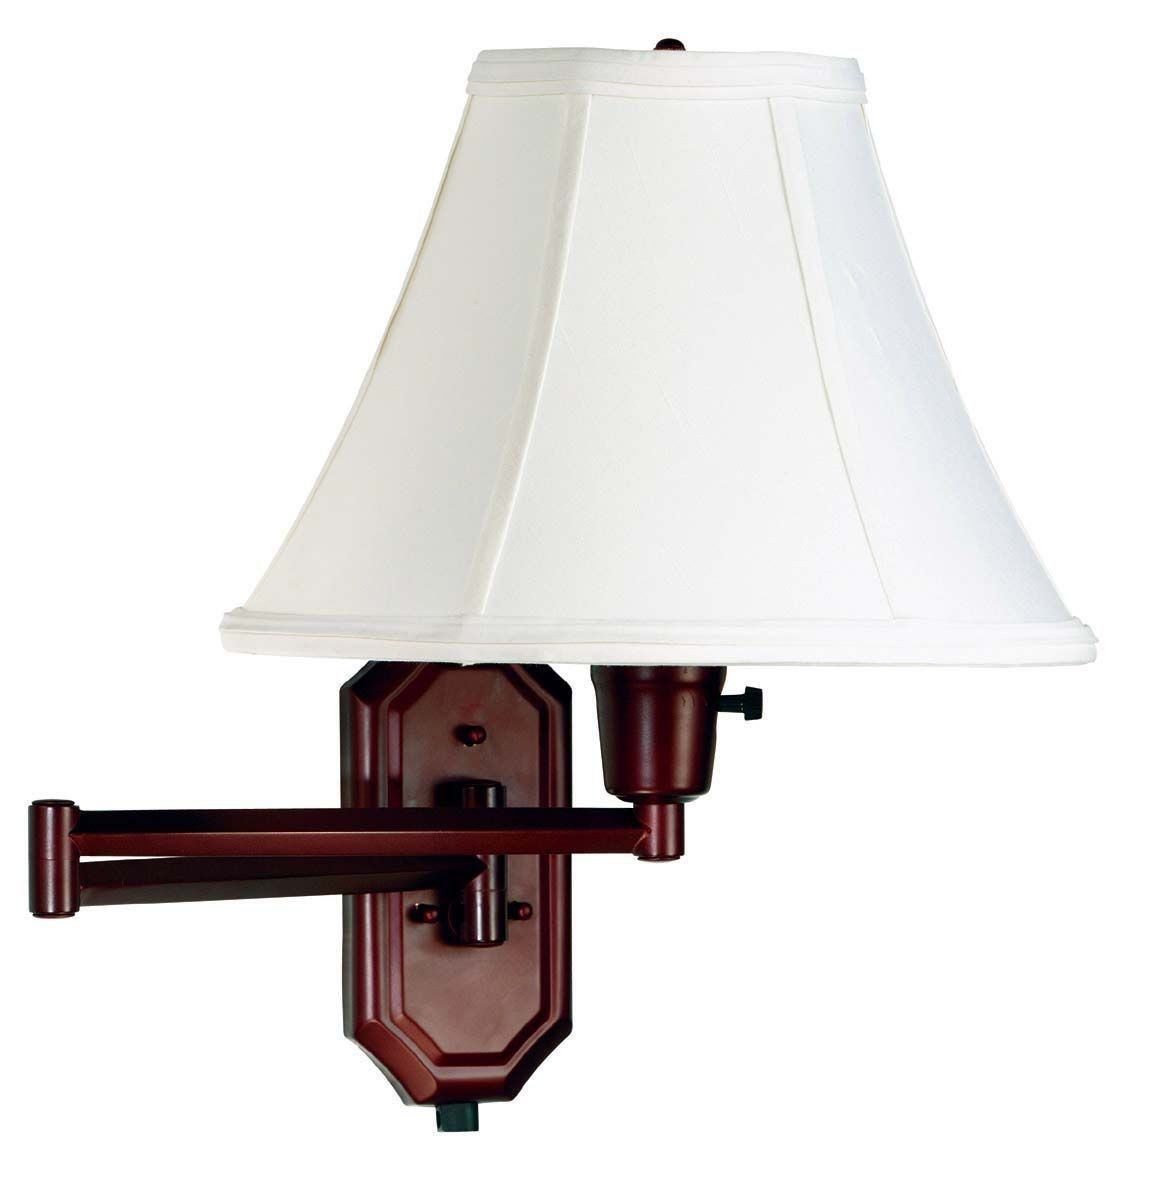 Nathaniel Bronze Wall Swing Arm Lamp from Kenroy (30130BRZ